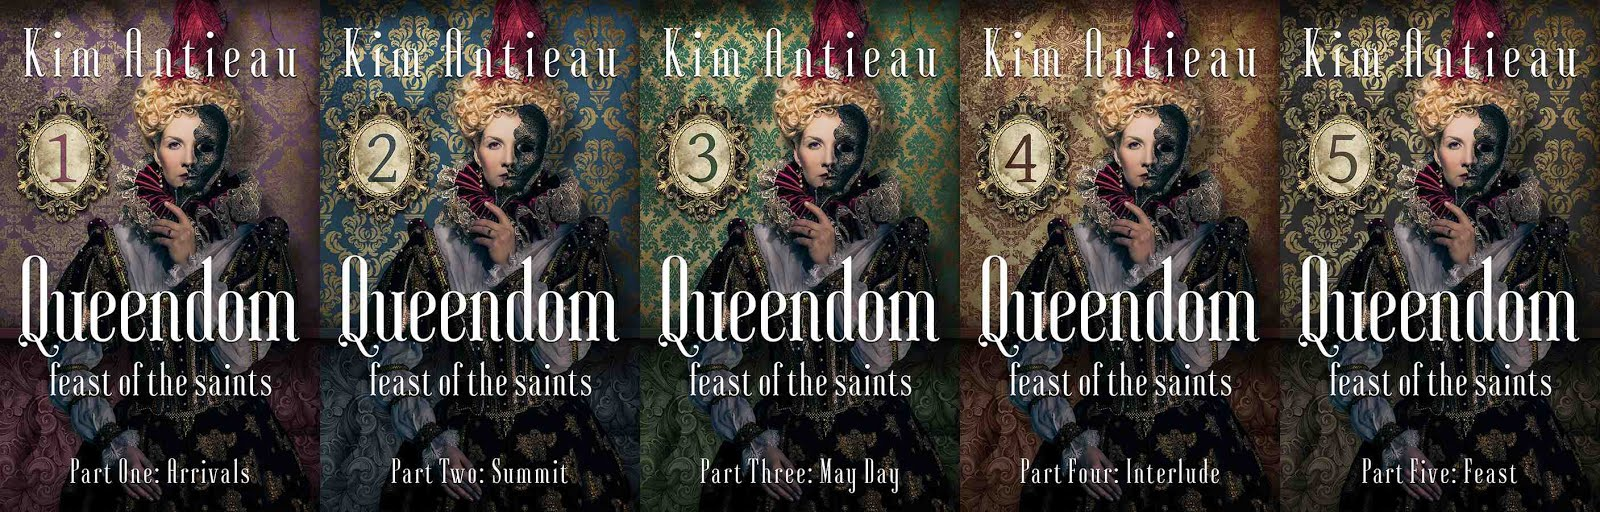 Queendom: Feast of the Saints, Special 5-part e-book series